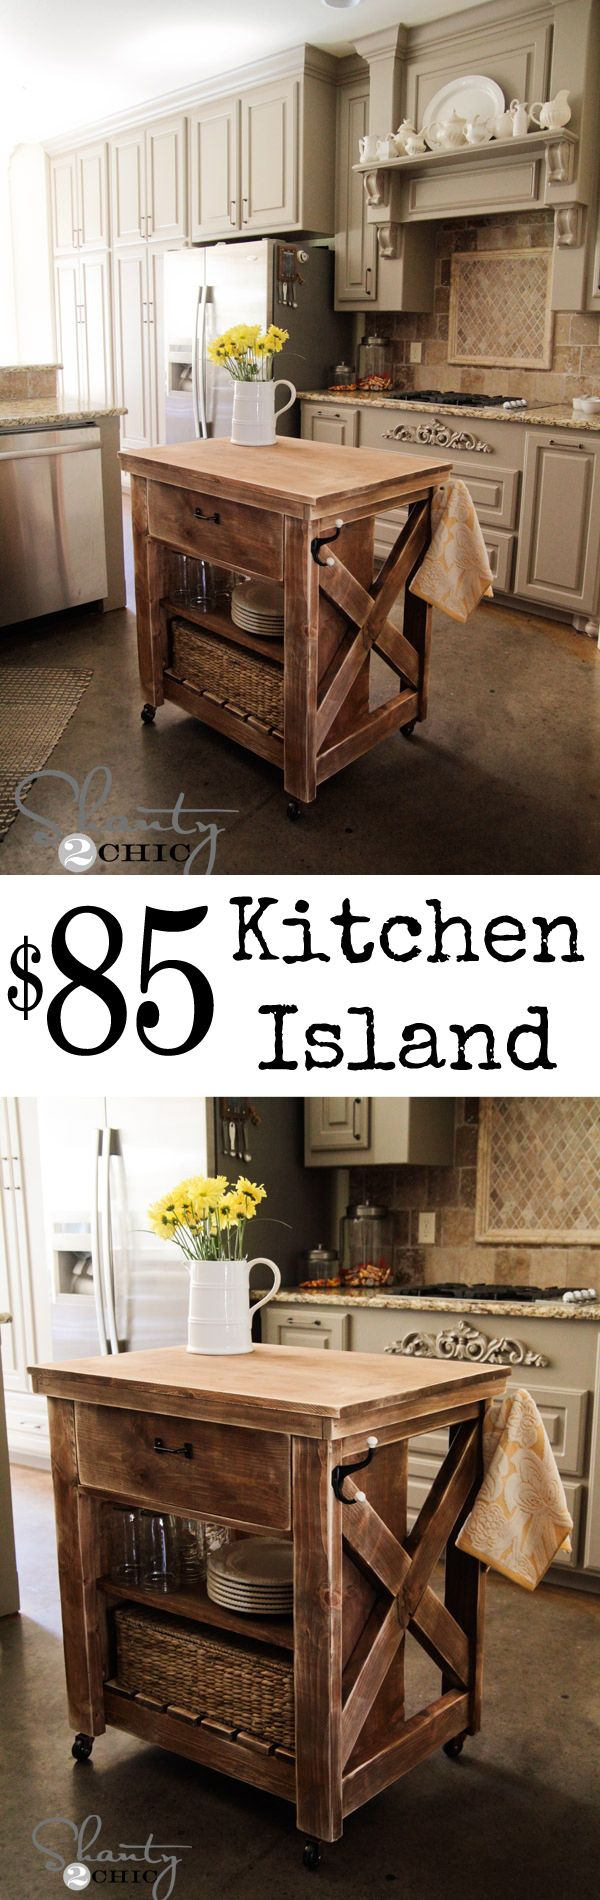 295 best DIY Kitchen Decor images on Pinterest Decorating tips